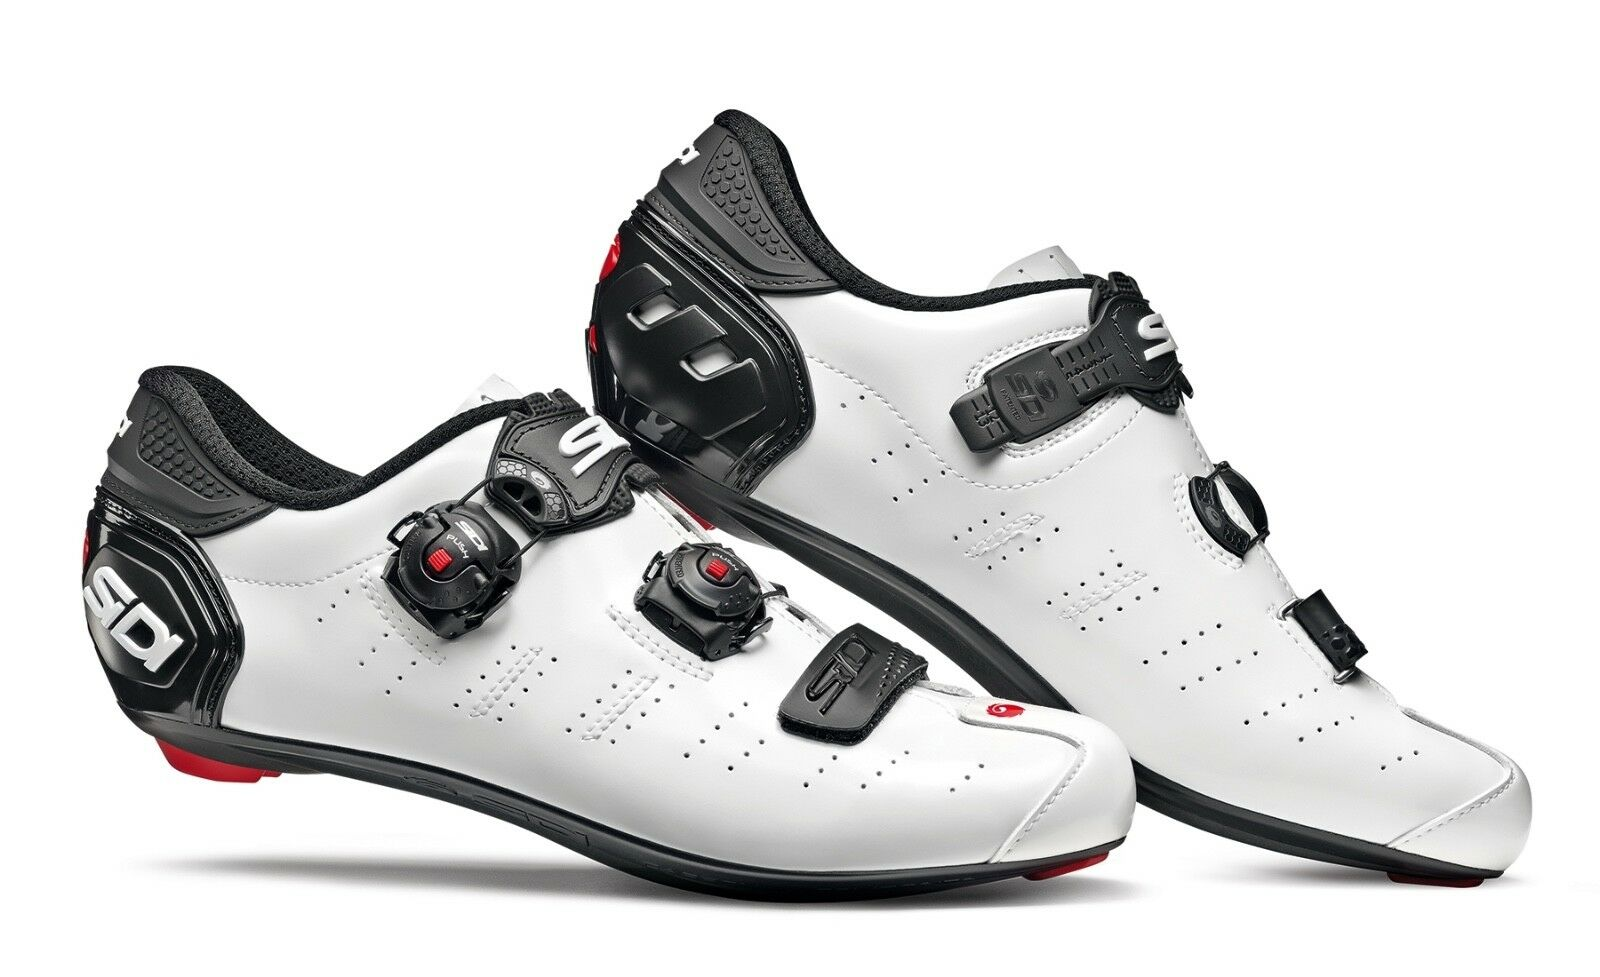 shoes SIDI ERGO 5 BIANCO black Size 42